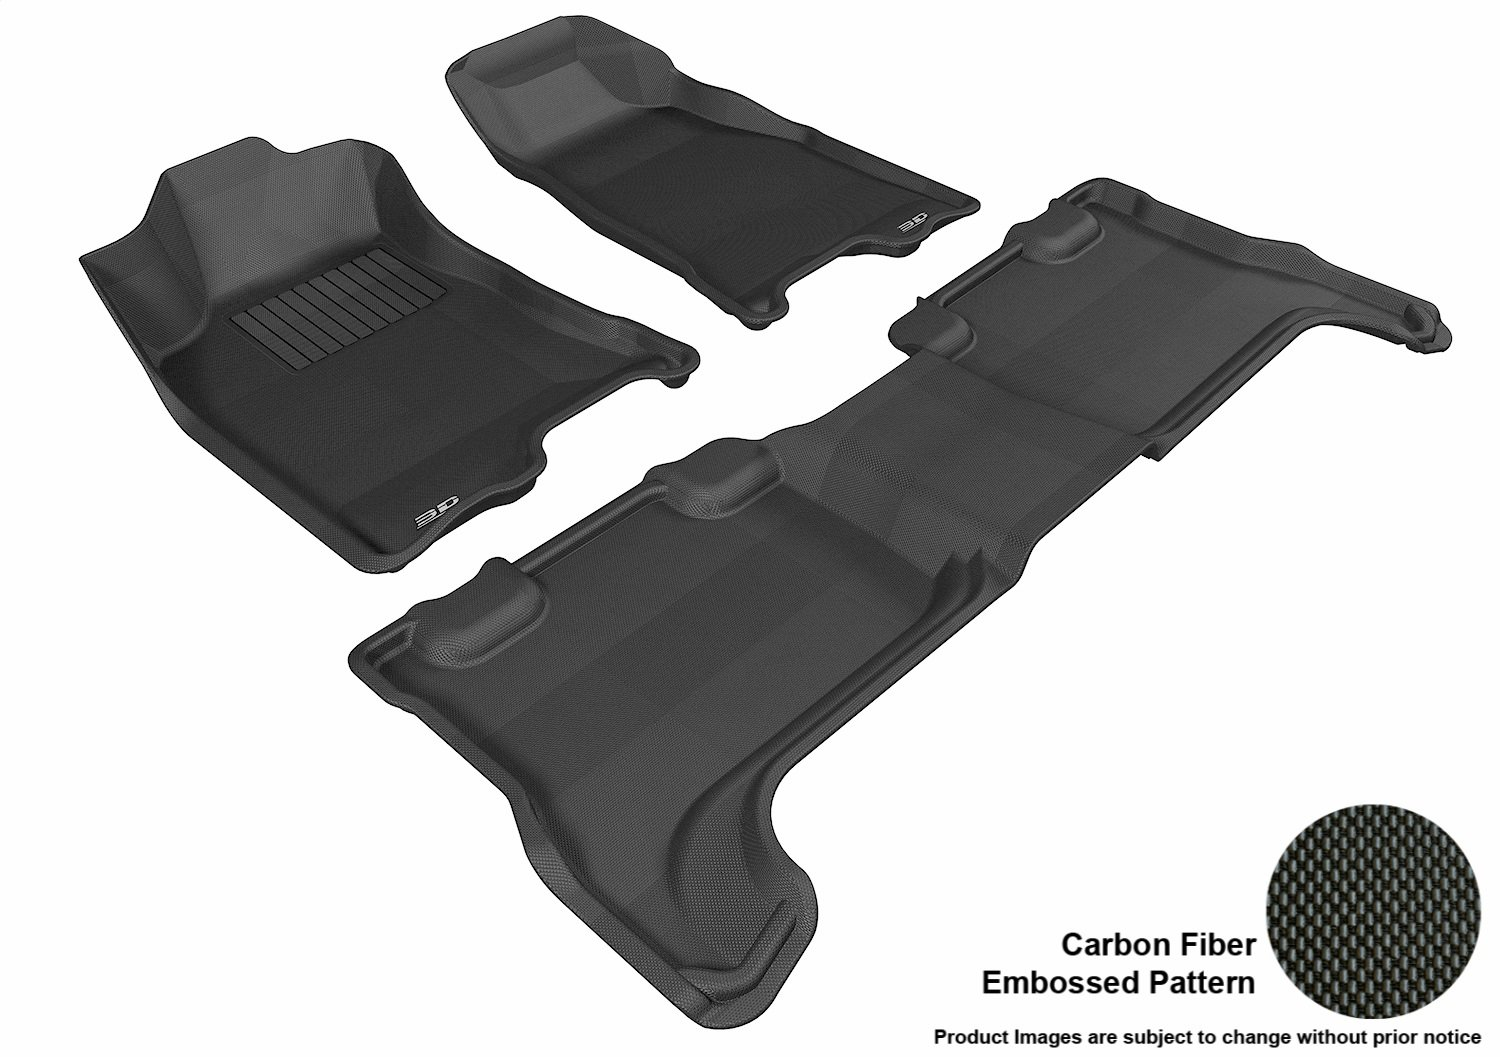 Tan Kagu Rubber 3D MAXpider Second Row Custom Fit All-Weather Floor Mat for Select Chevrolet Colorado Models